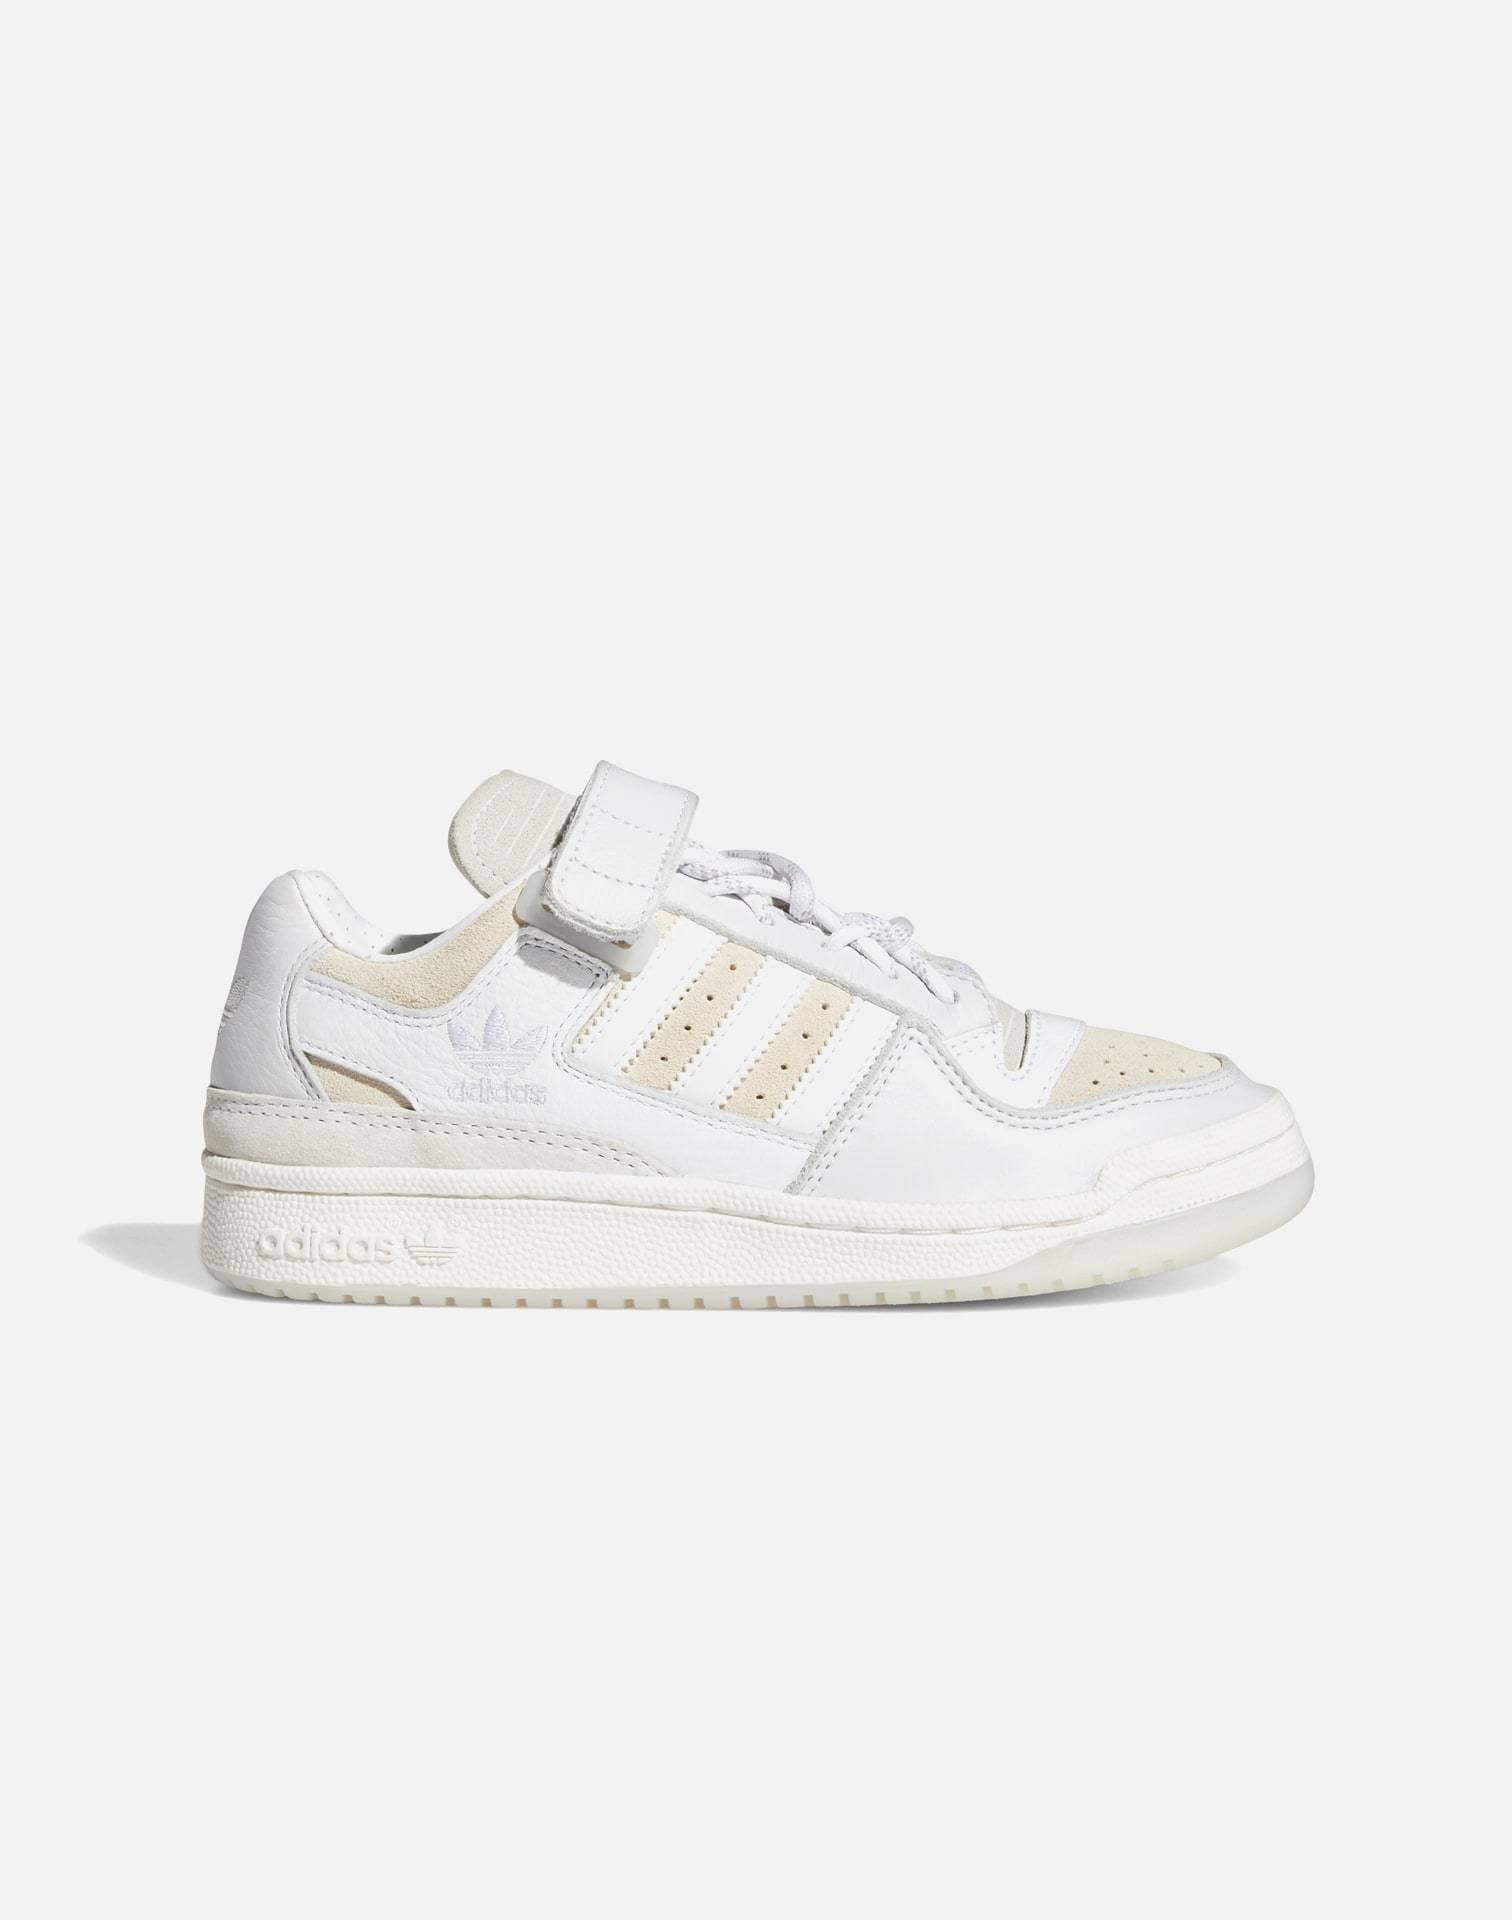 Adidas IVY PARK FORUM LOW